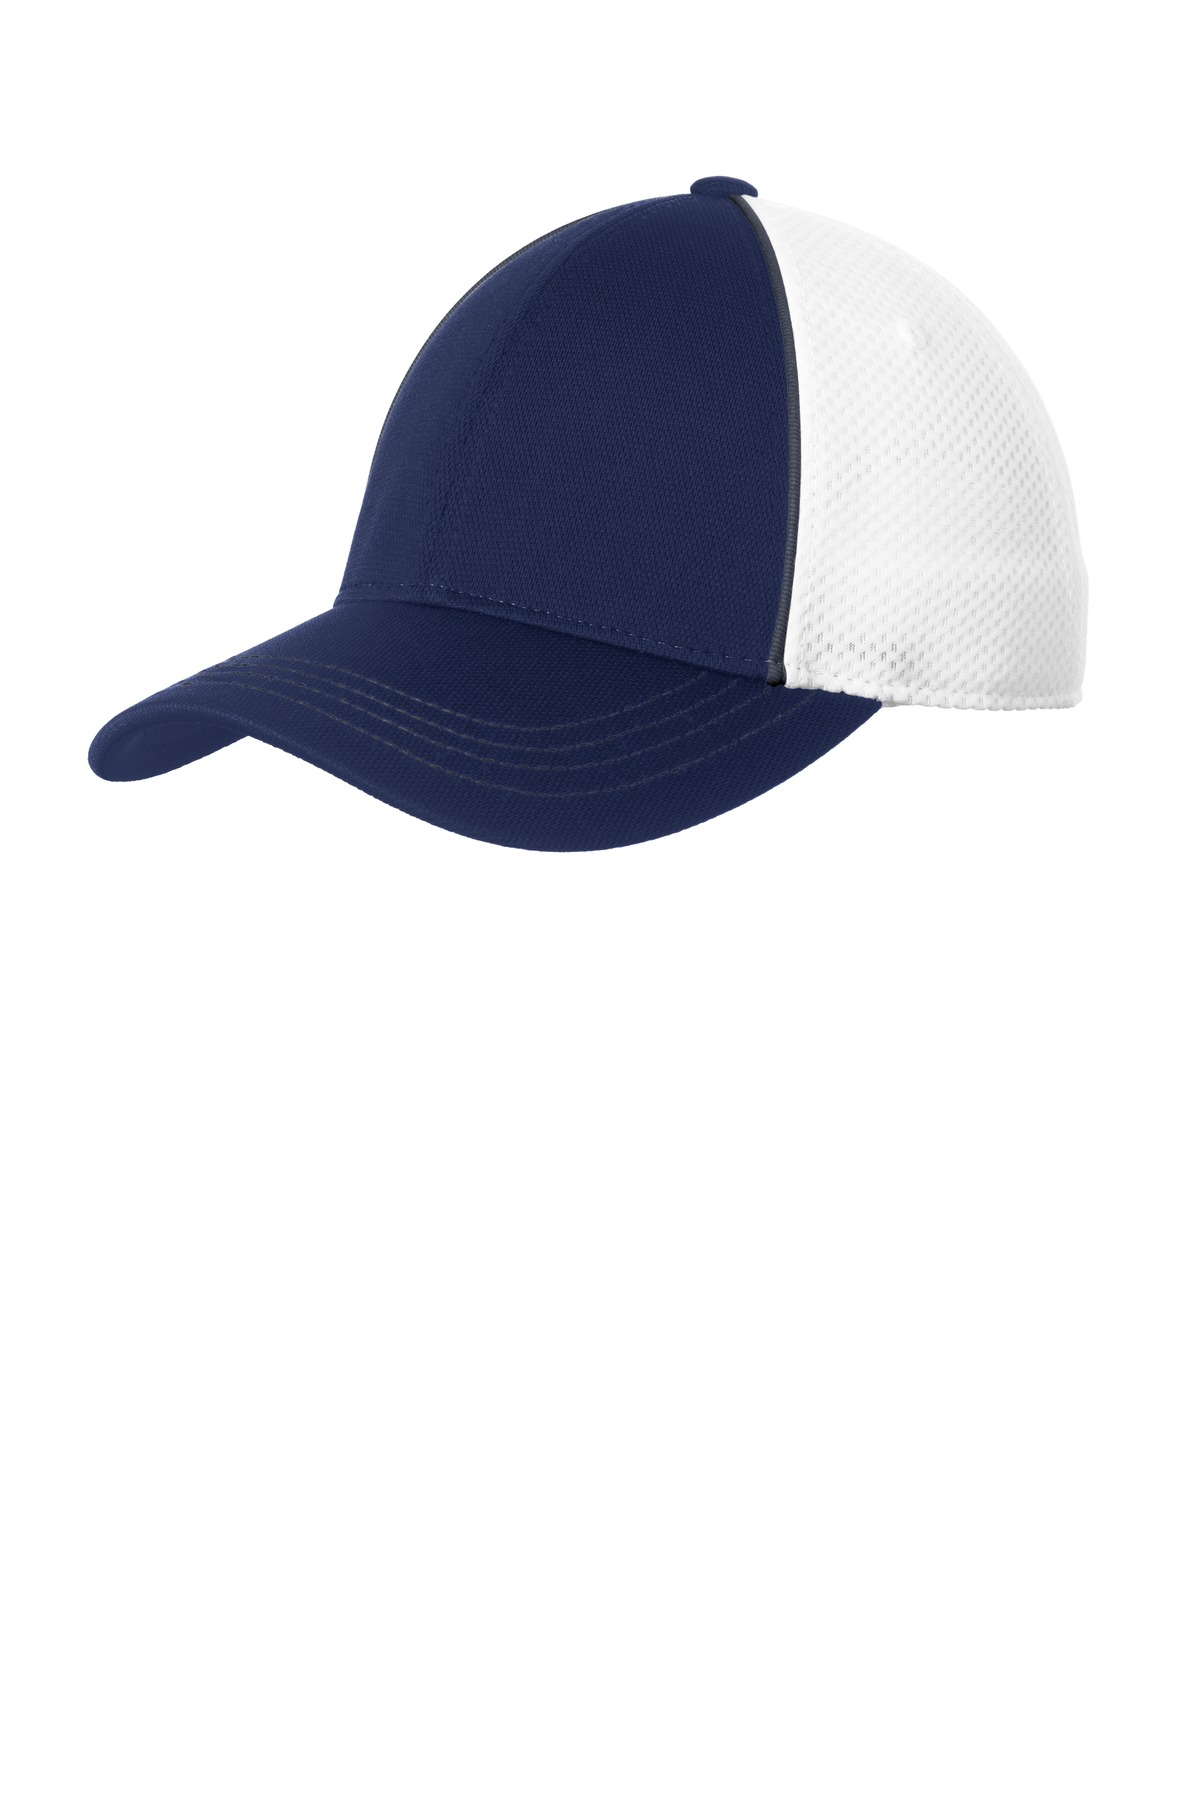 Sport-Tek ®  Piped Mesh Back Cap. STC29 - Graphite/ True Navy/ White